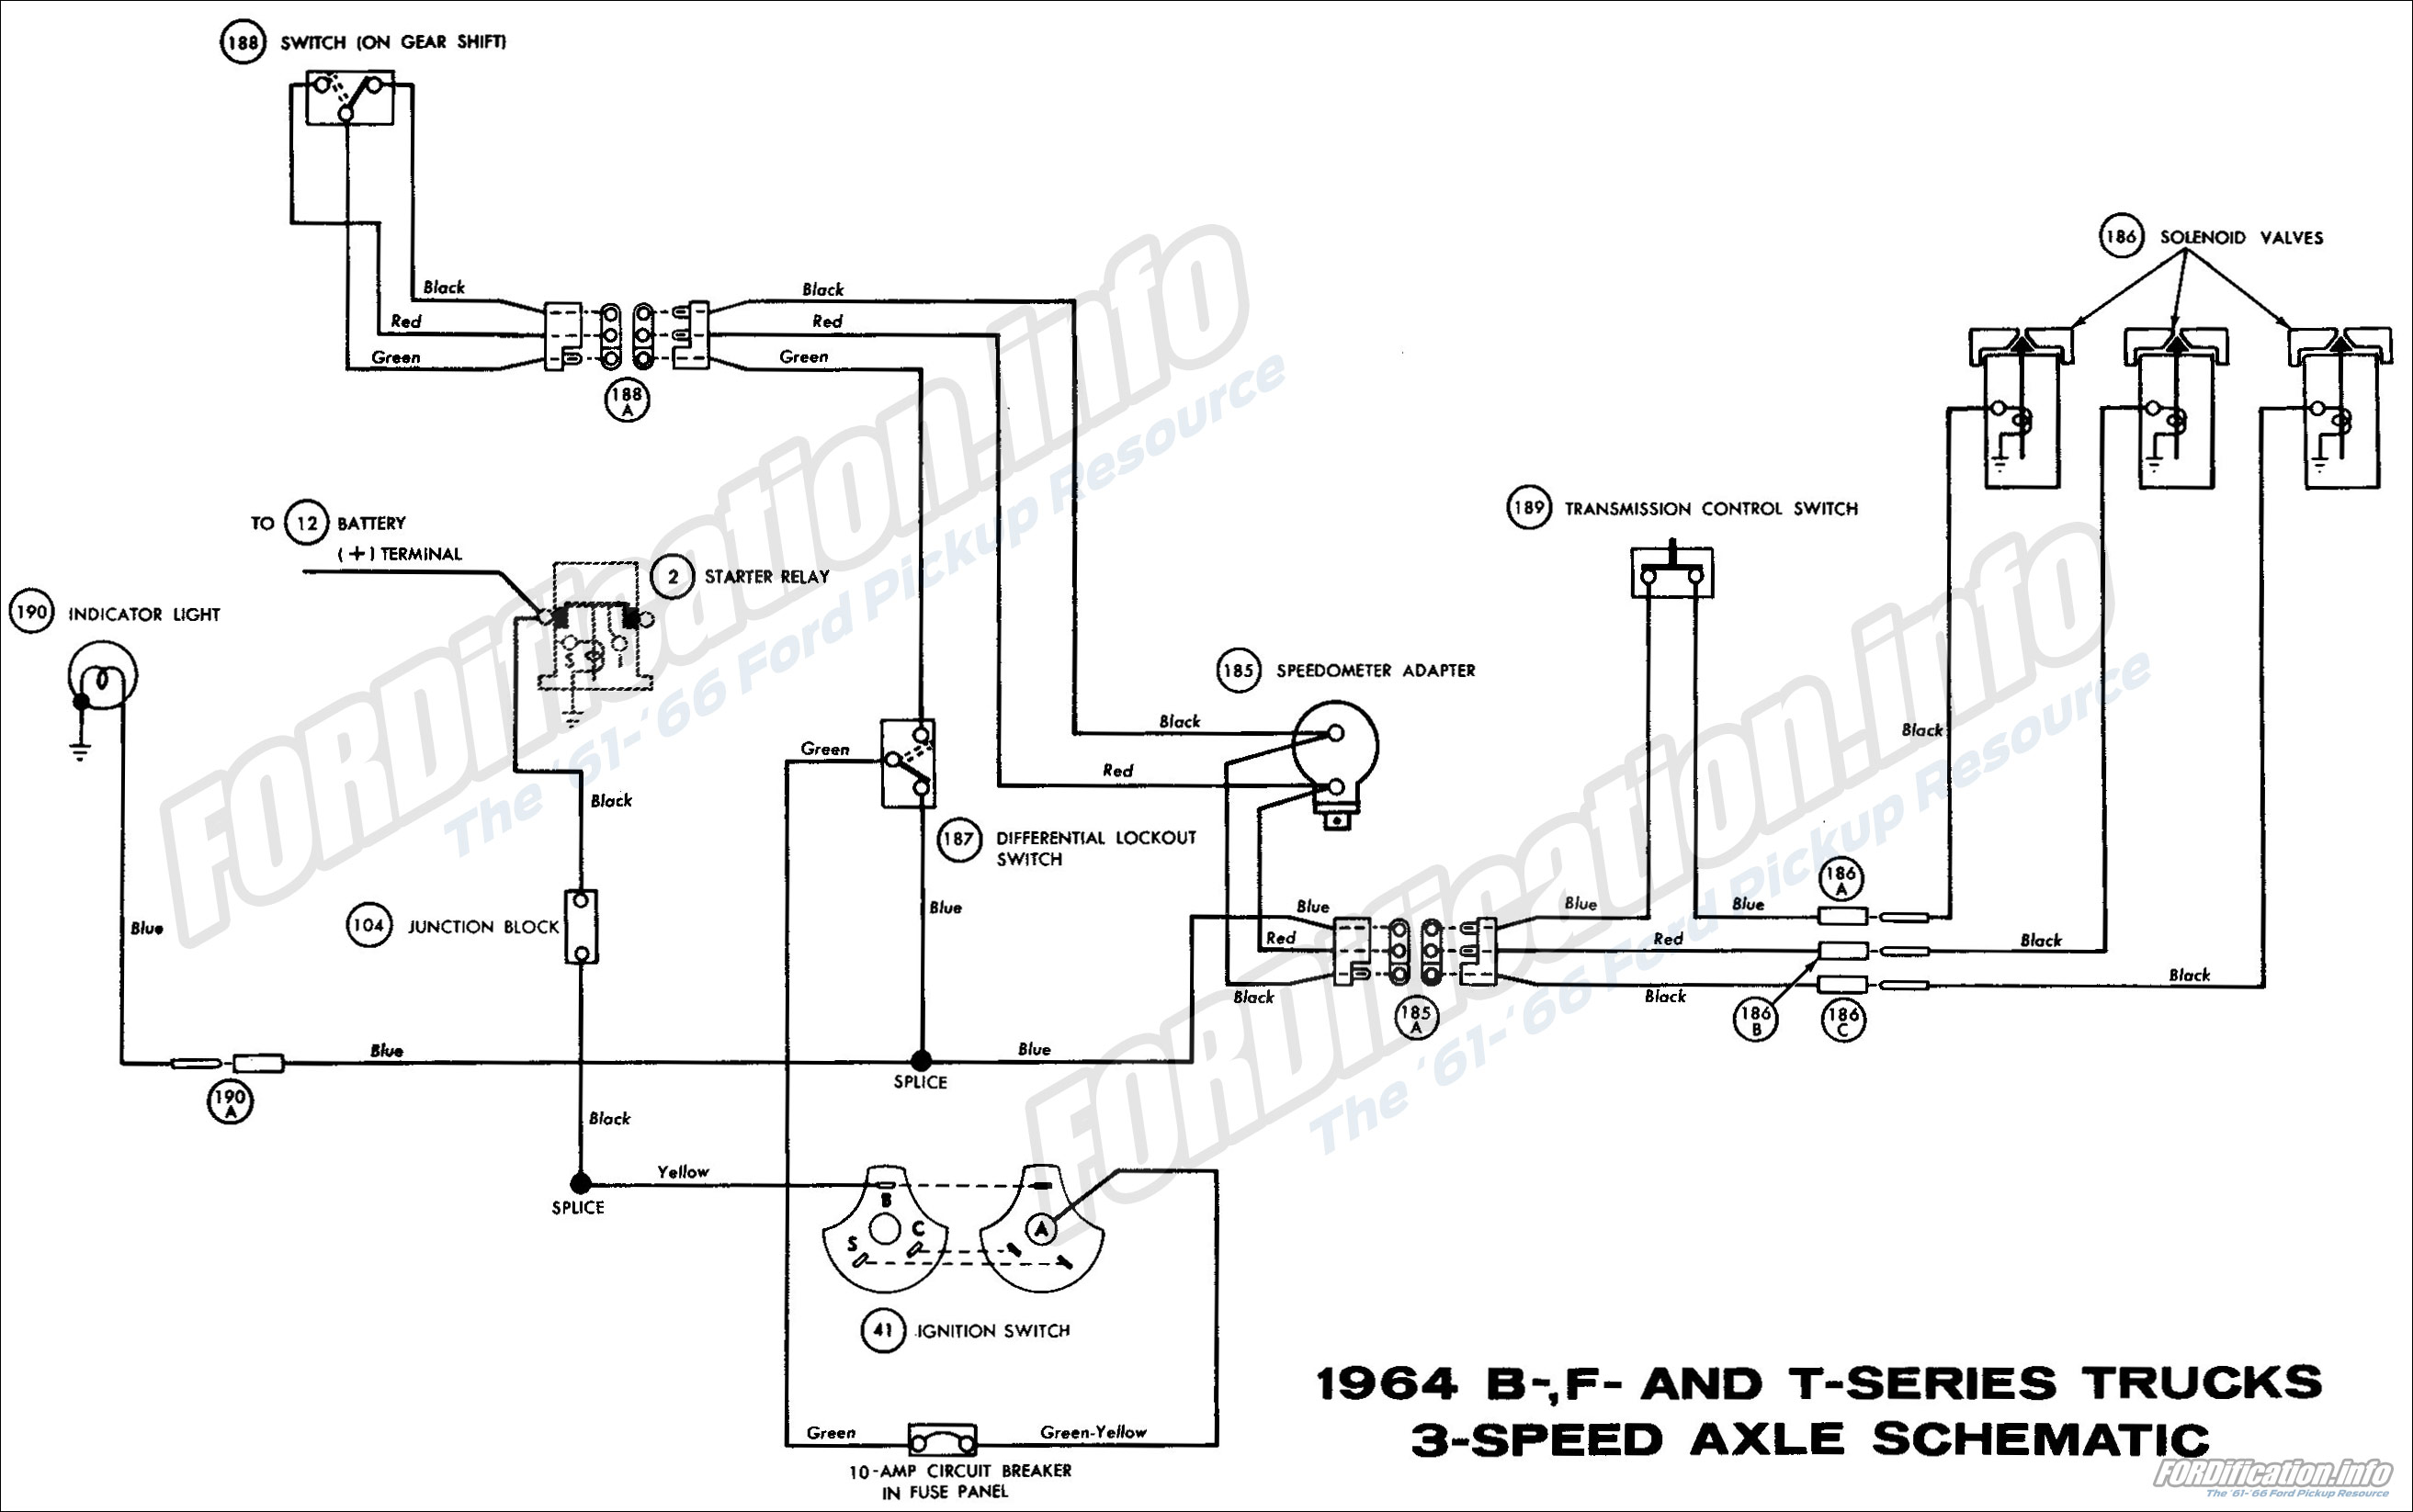 1964_19 1964 ford truck wiring diagrams fordification info the '61 '66 eaton wiring diagram at crackthecode.co